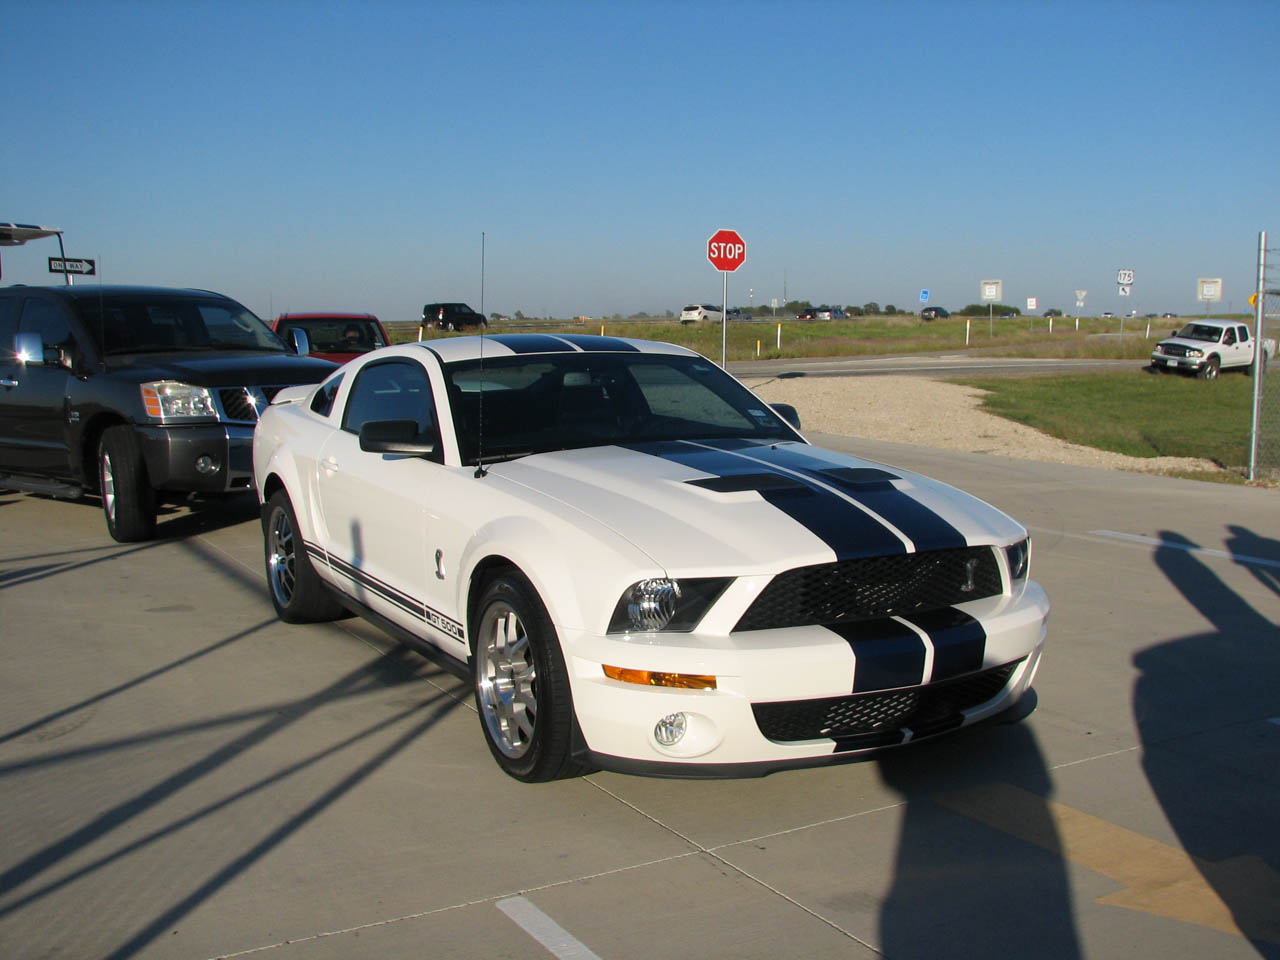 2007 ford mustang shelby gt500 1 4 mile drag racing timeslip specs 0. Black Bedroom Furniture Sets. Home Design Ideas